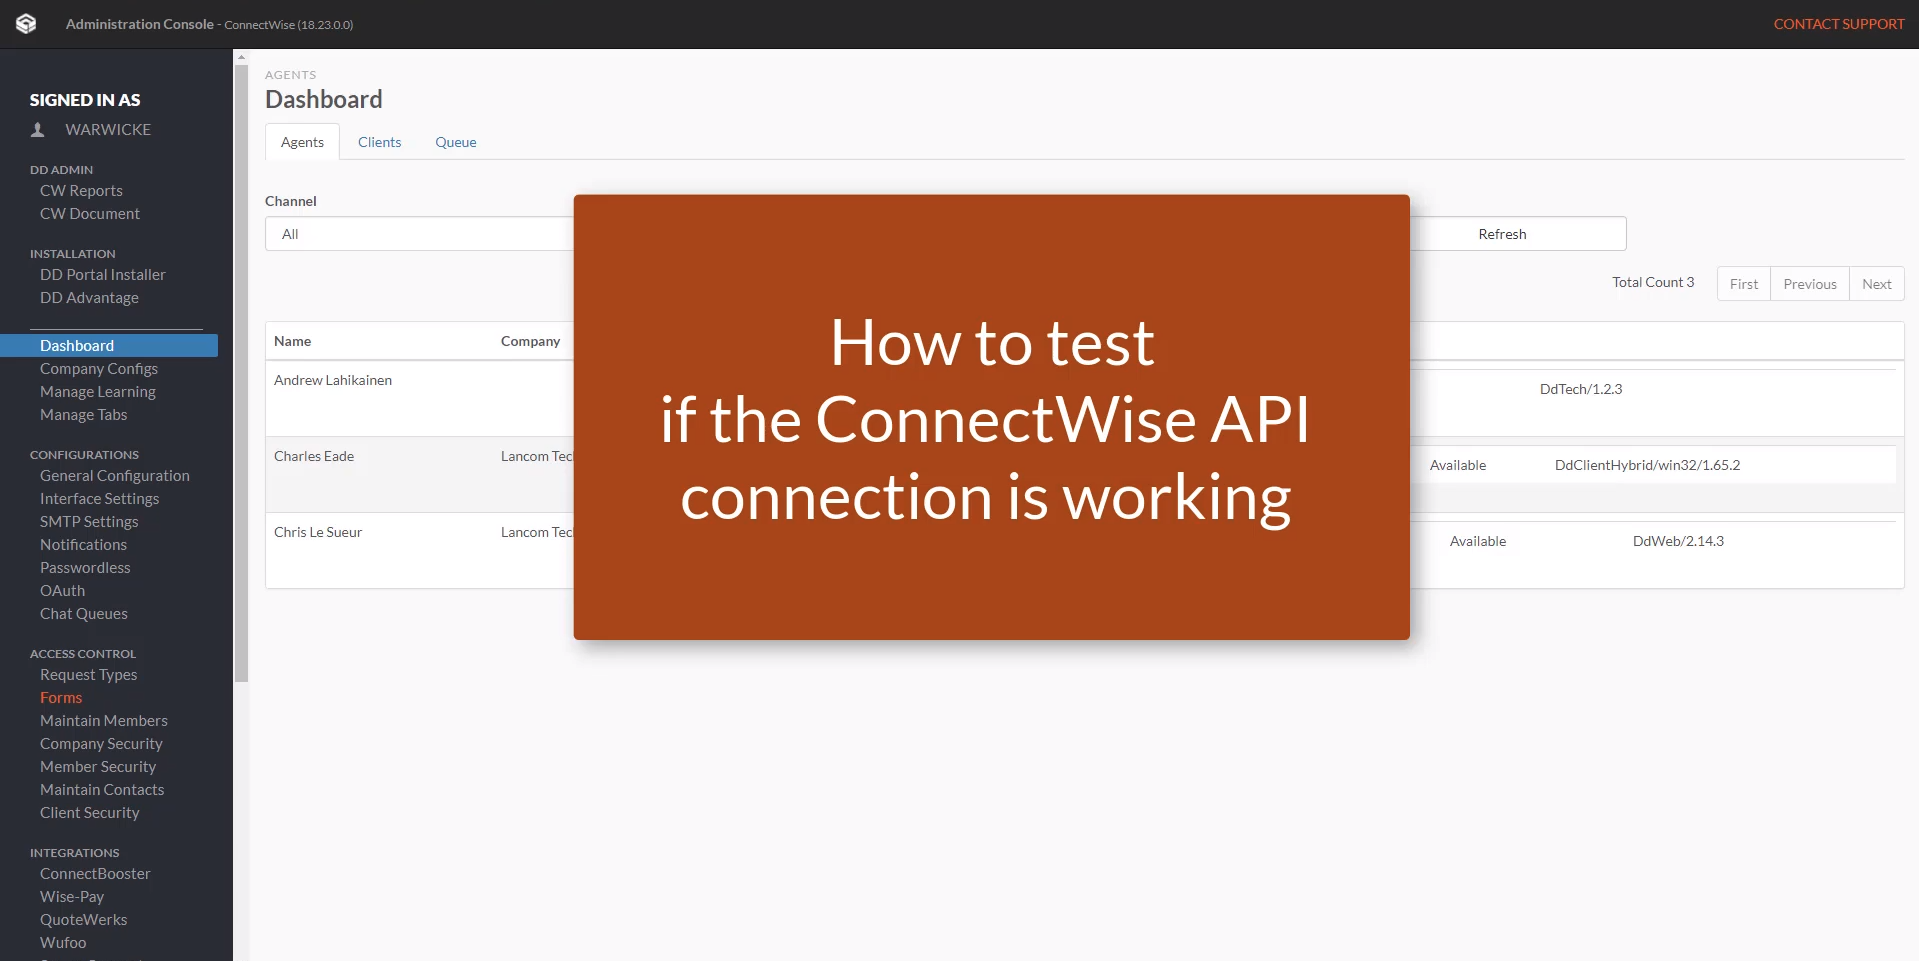 How to test if the ConnectWise API connection is working?